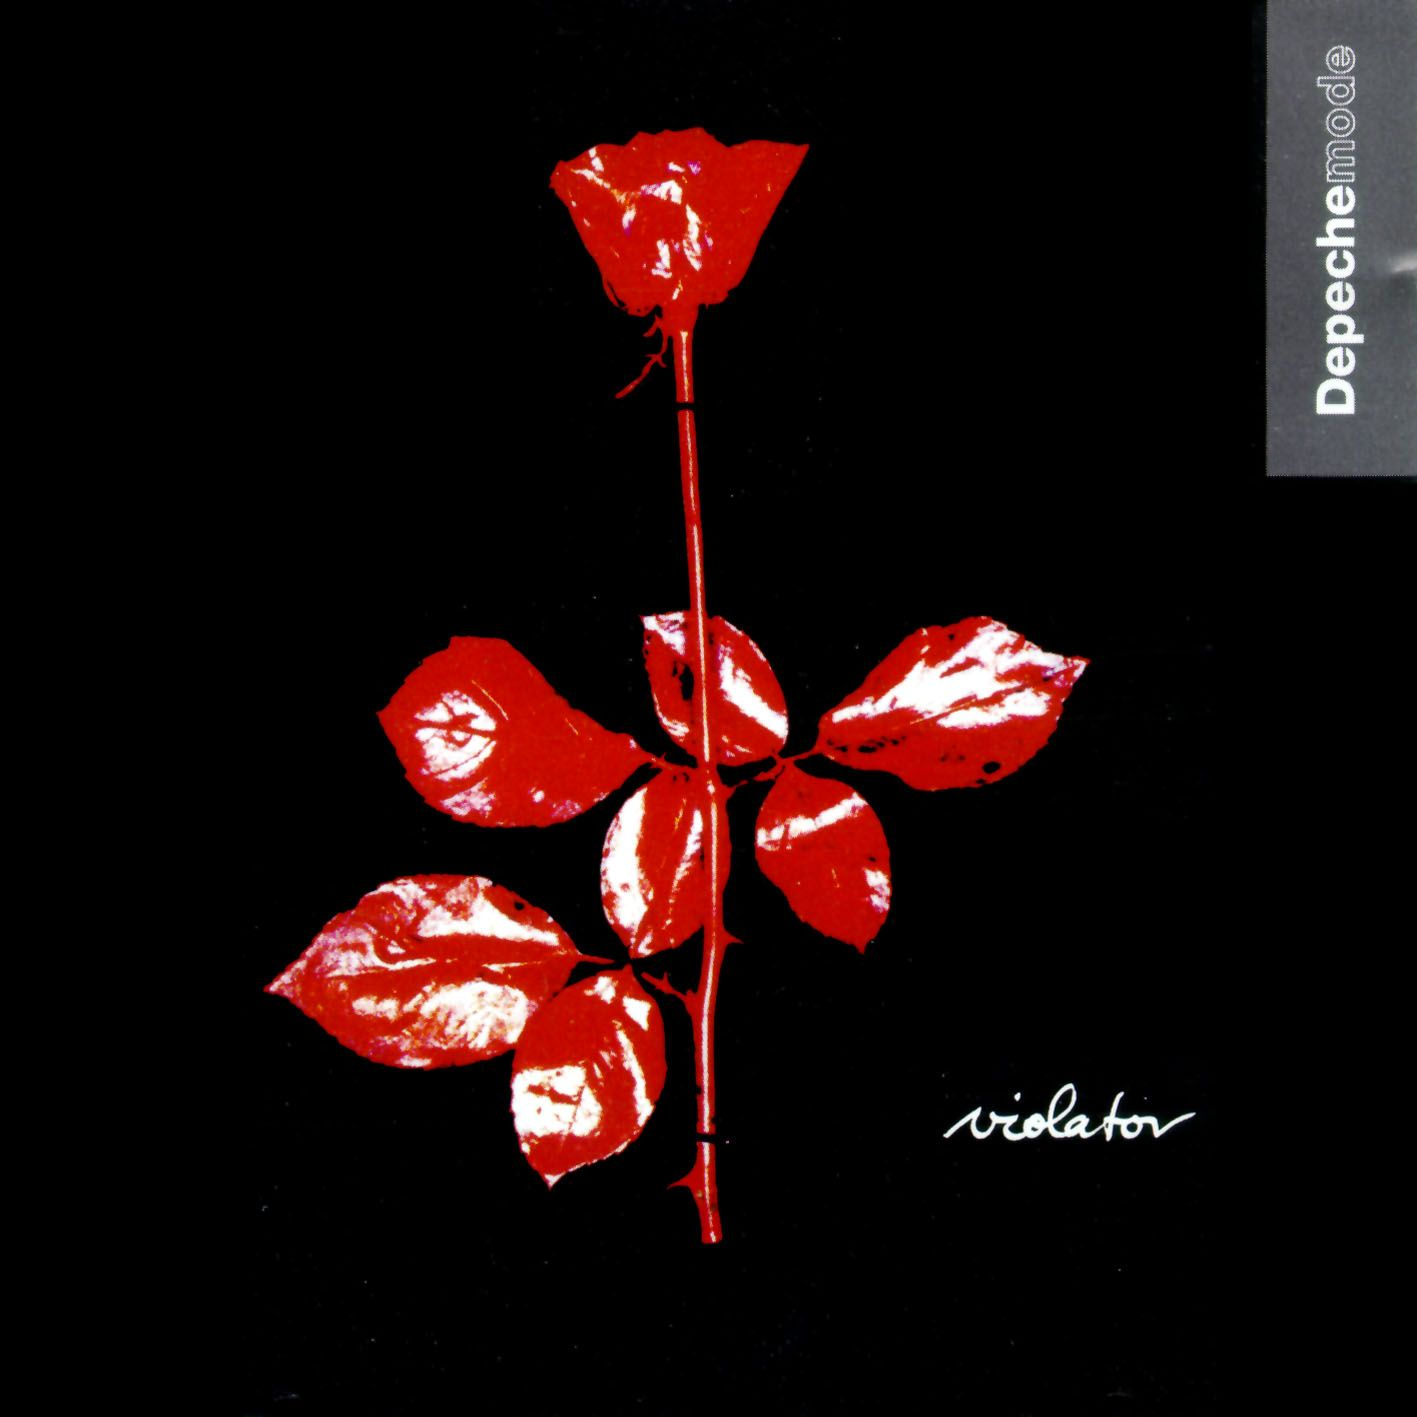 Depeche Mode Album Covers Songs That Saved Your Life Your Lips